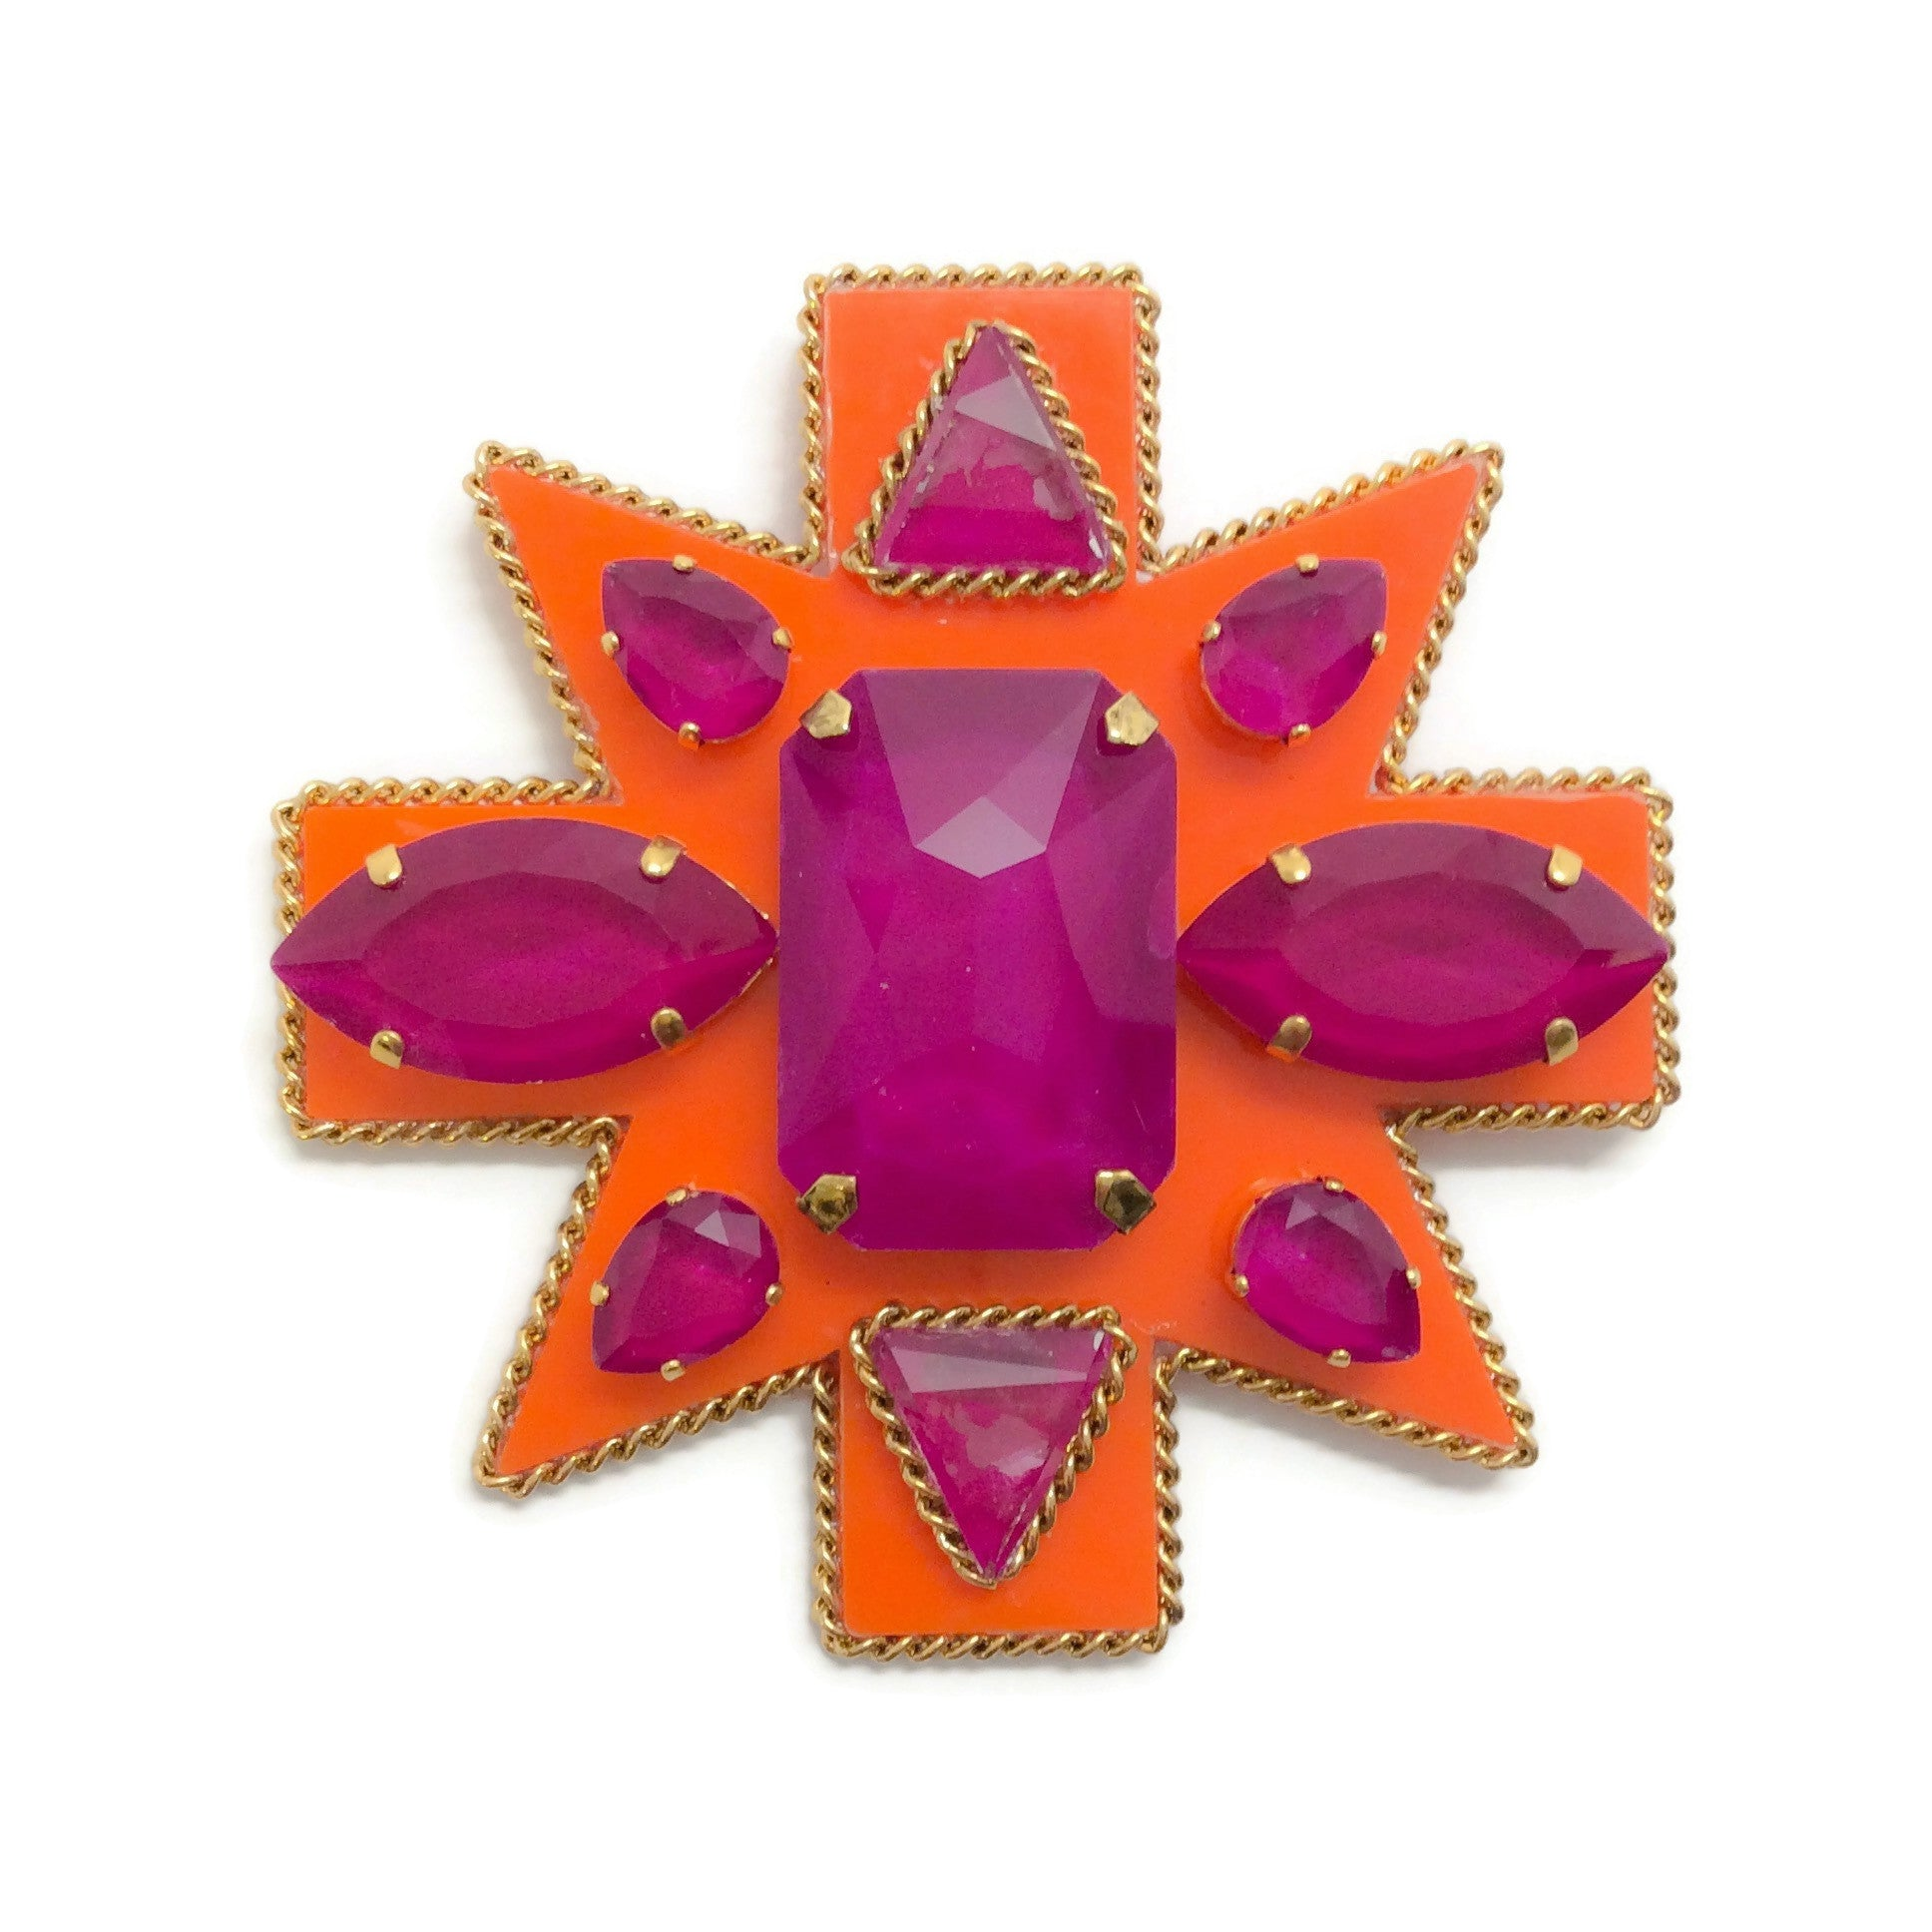 Erickson Beamon Orange / Purple Girls On Film Brooch